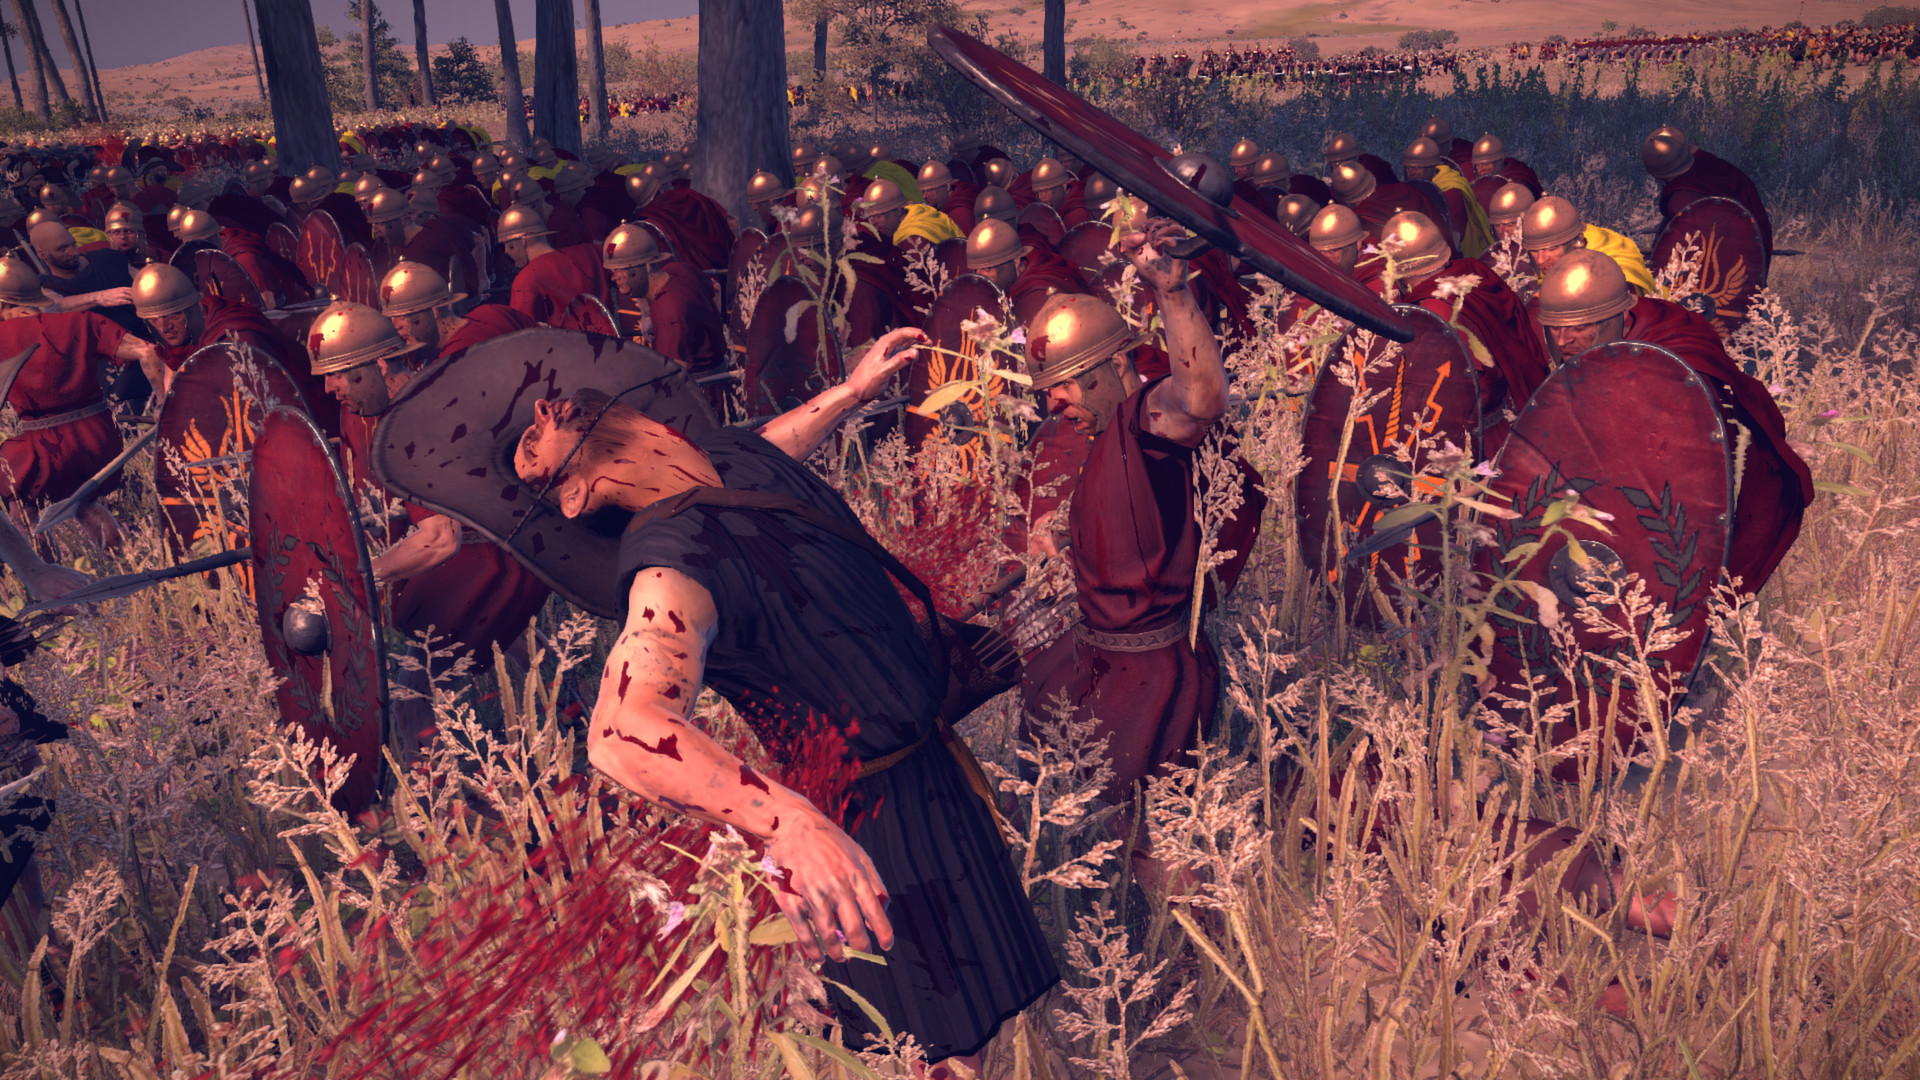 total war rome II blood and gore 31102013g